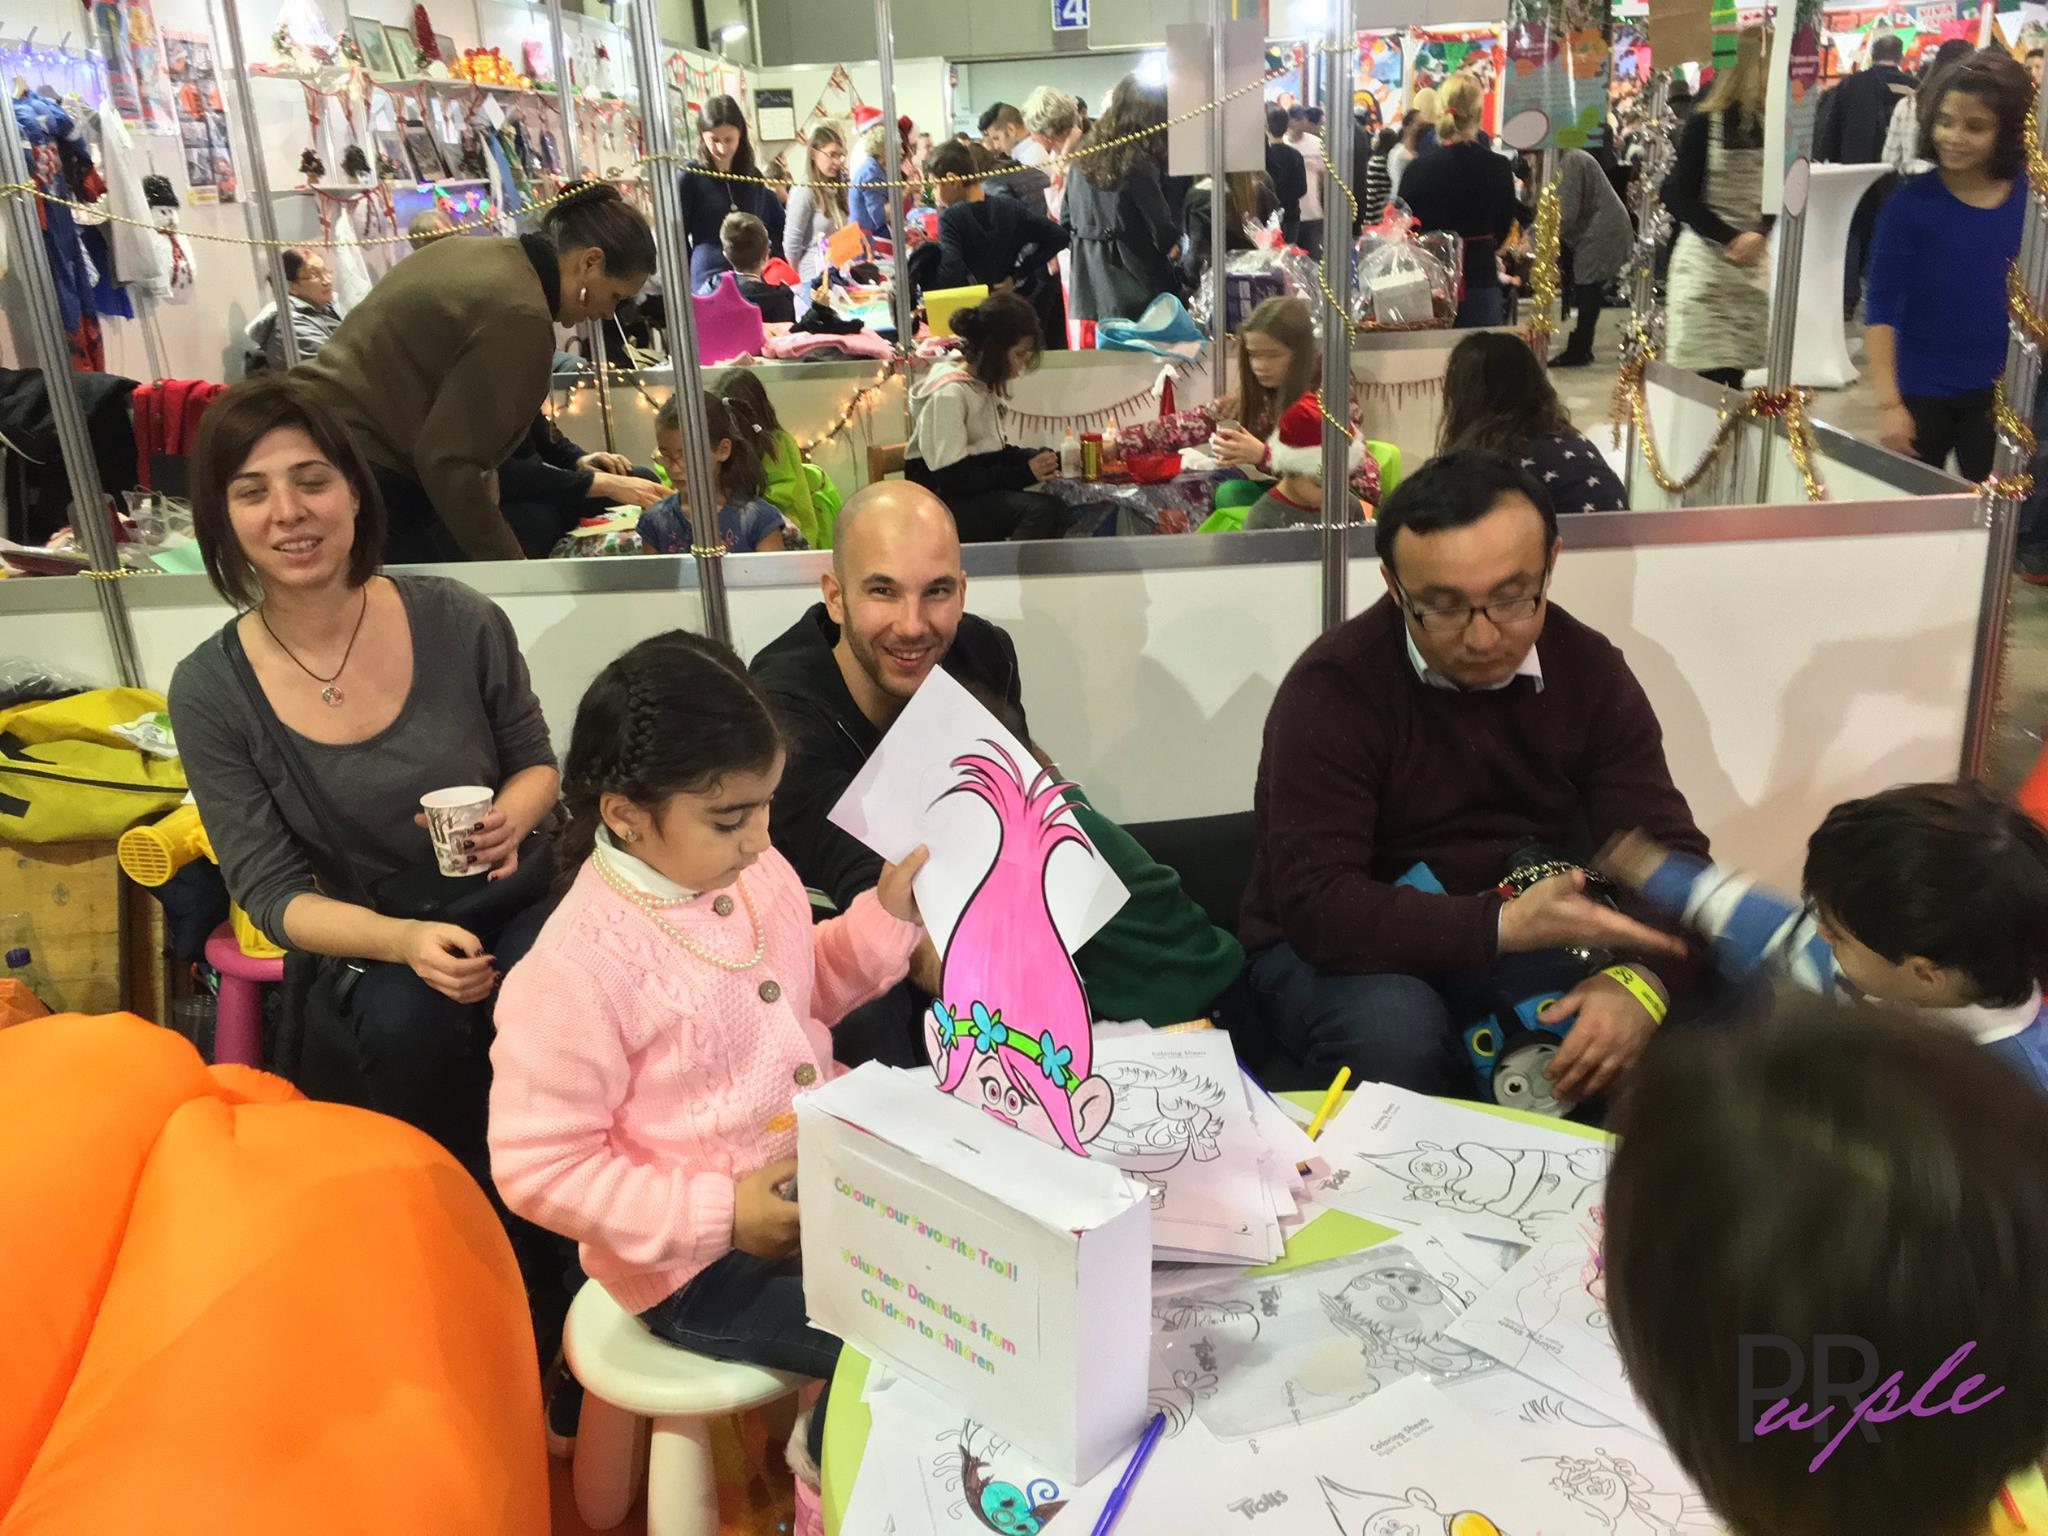 9-22-IWC-Charity-Bazaar-Christmas-The-world-comes-to-you-IEC-Sofia-Purple-PR-campaign